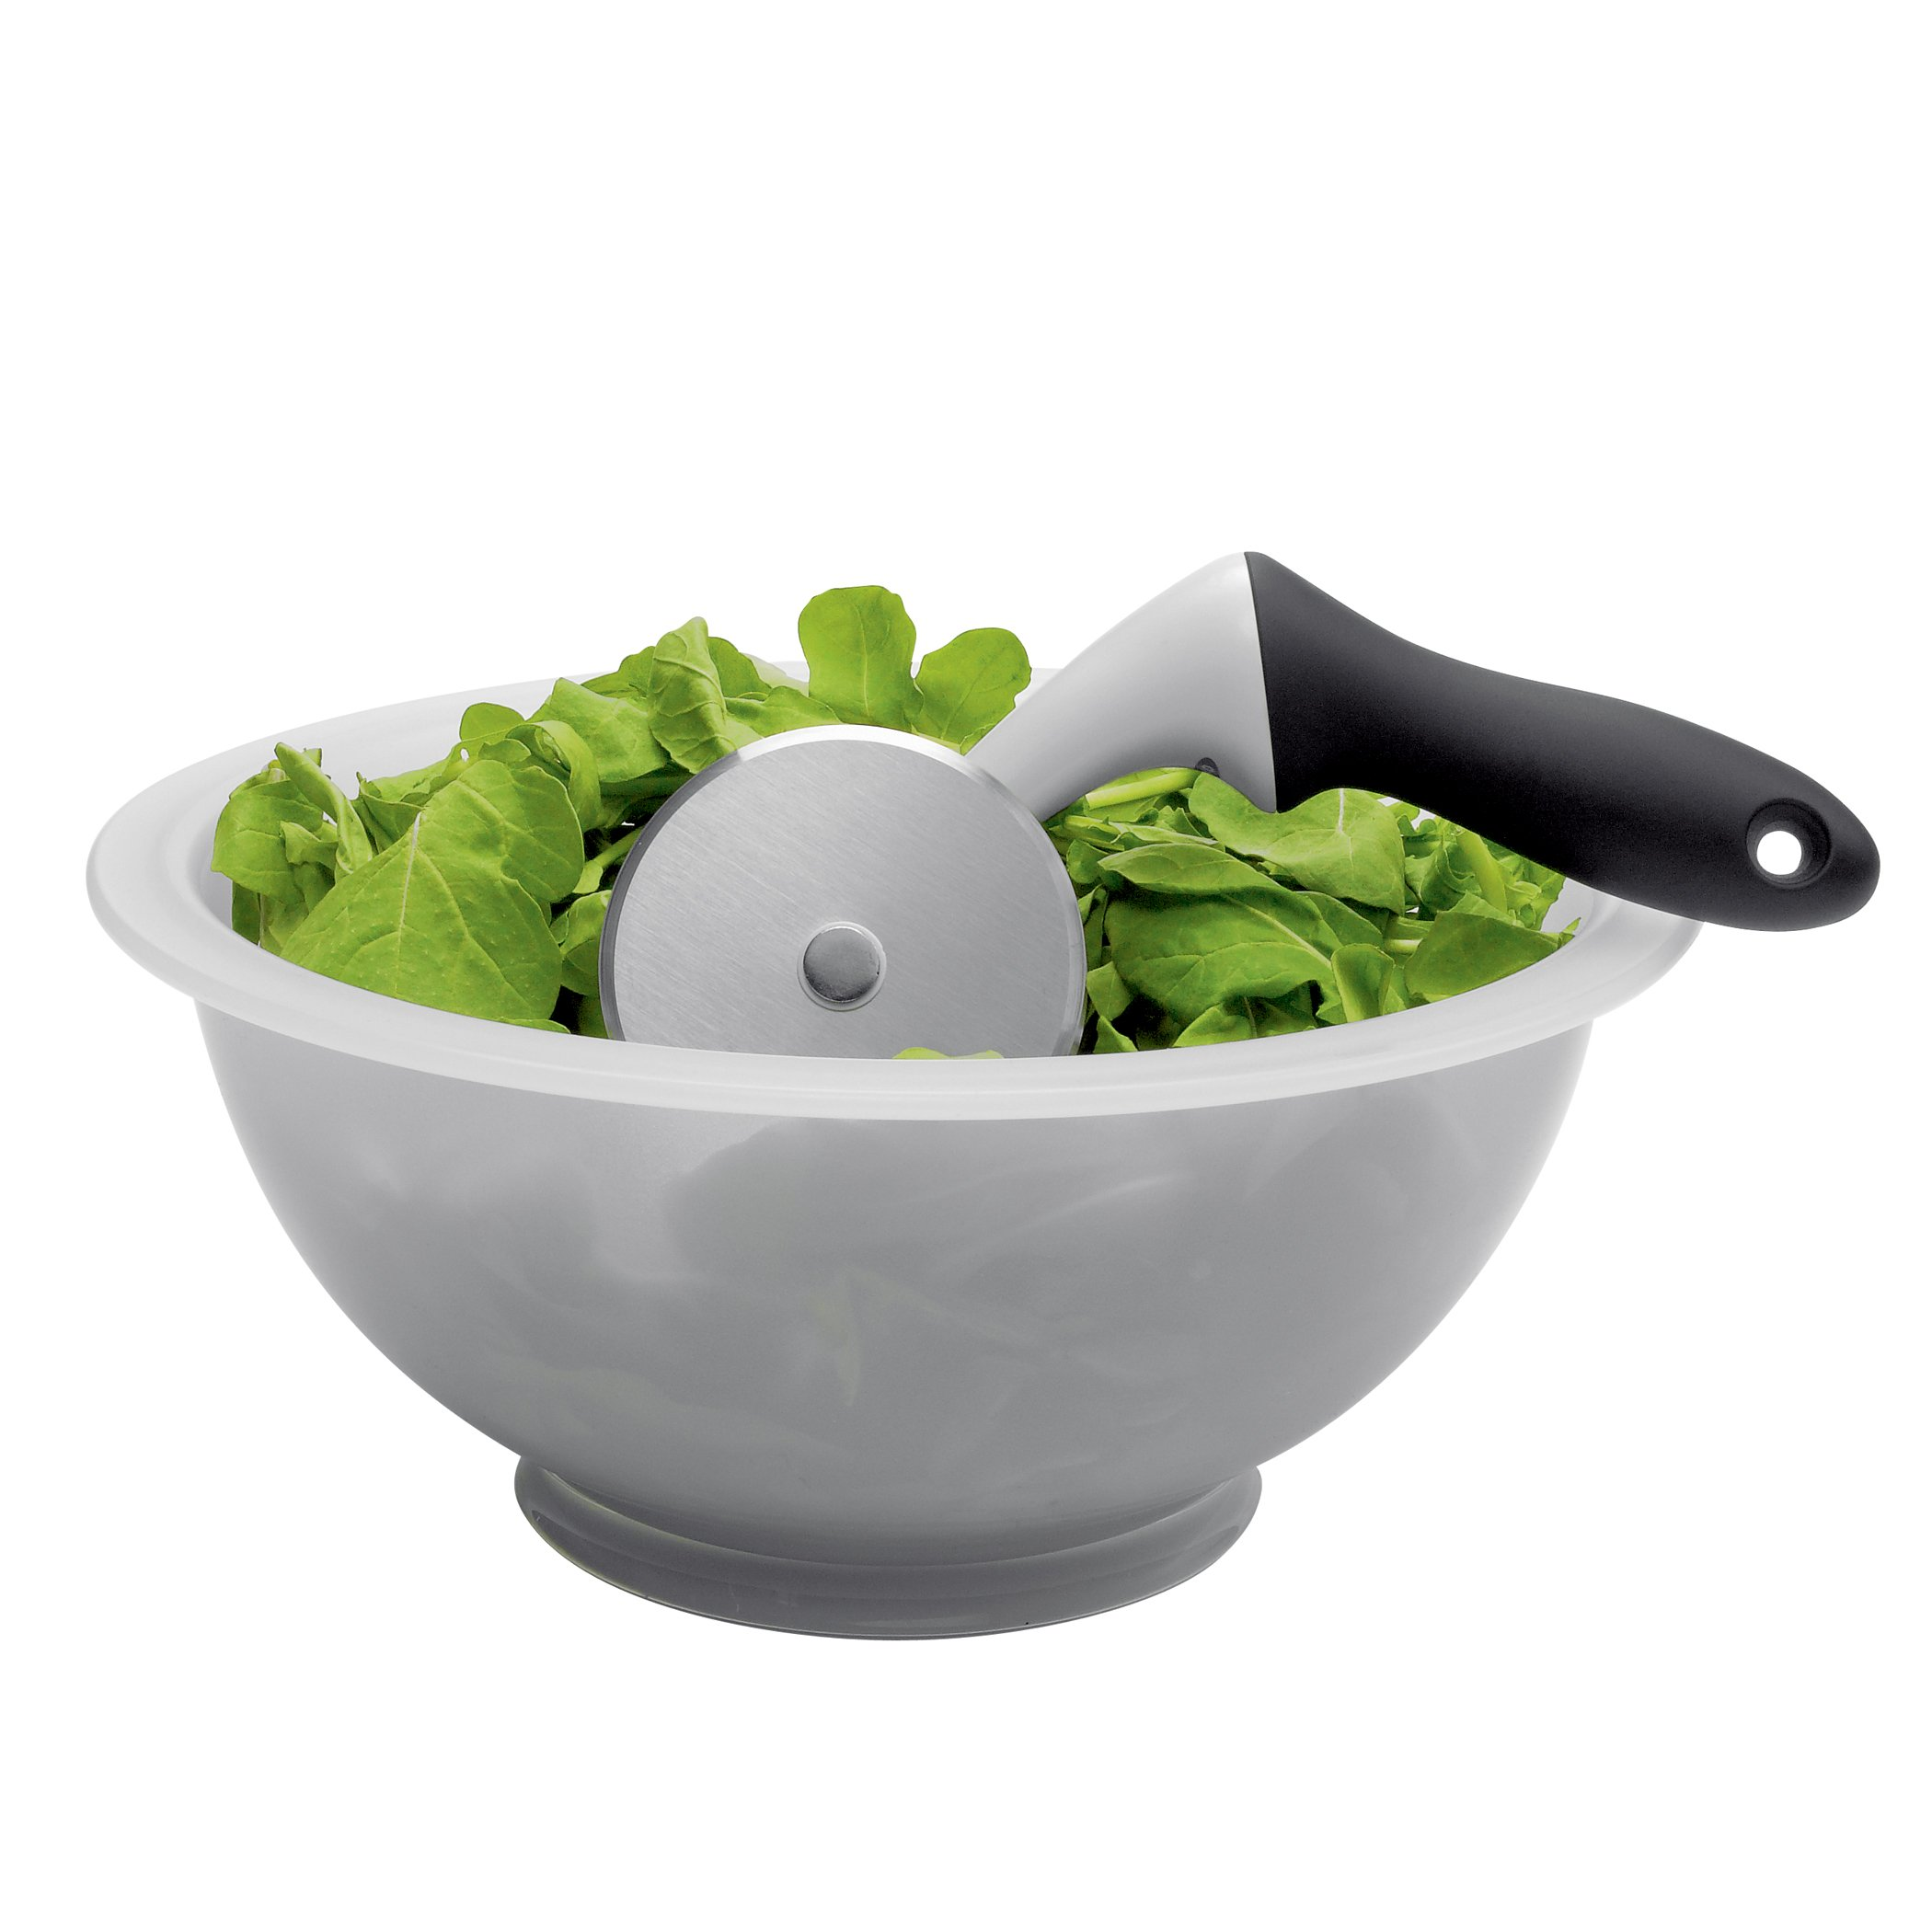 OXO Good Grips Salad Chopper and Bowl by OXO (Image #2)